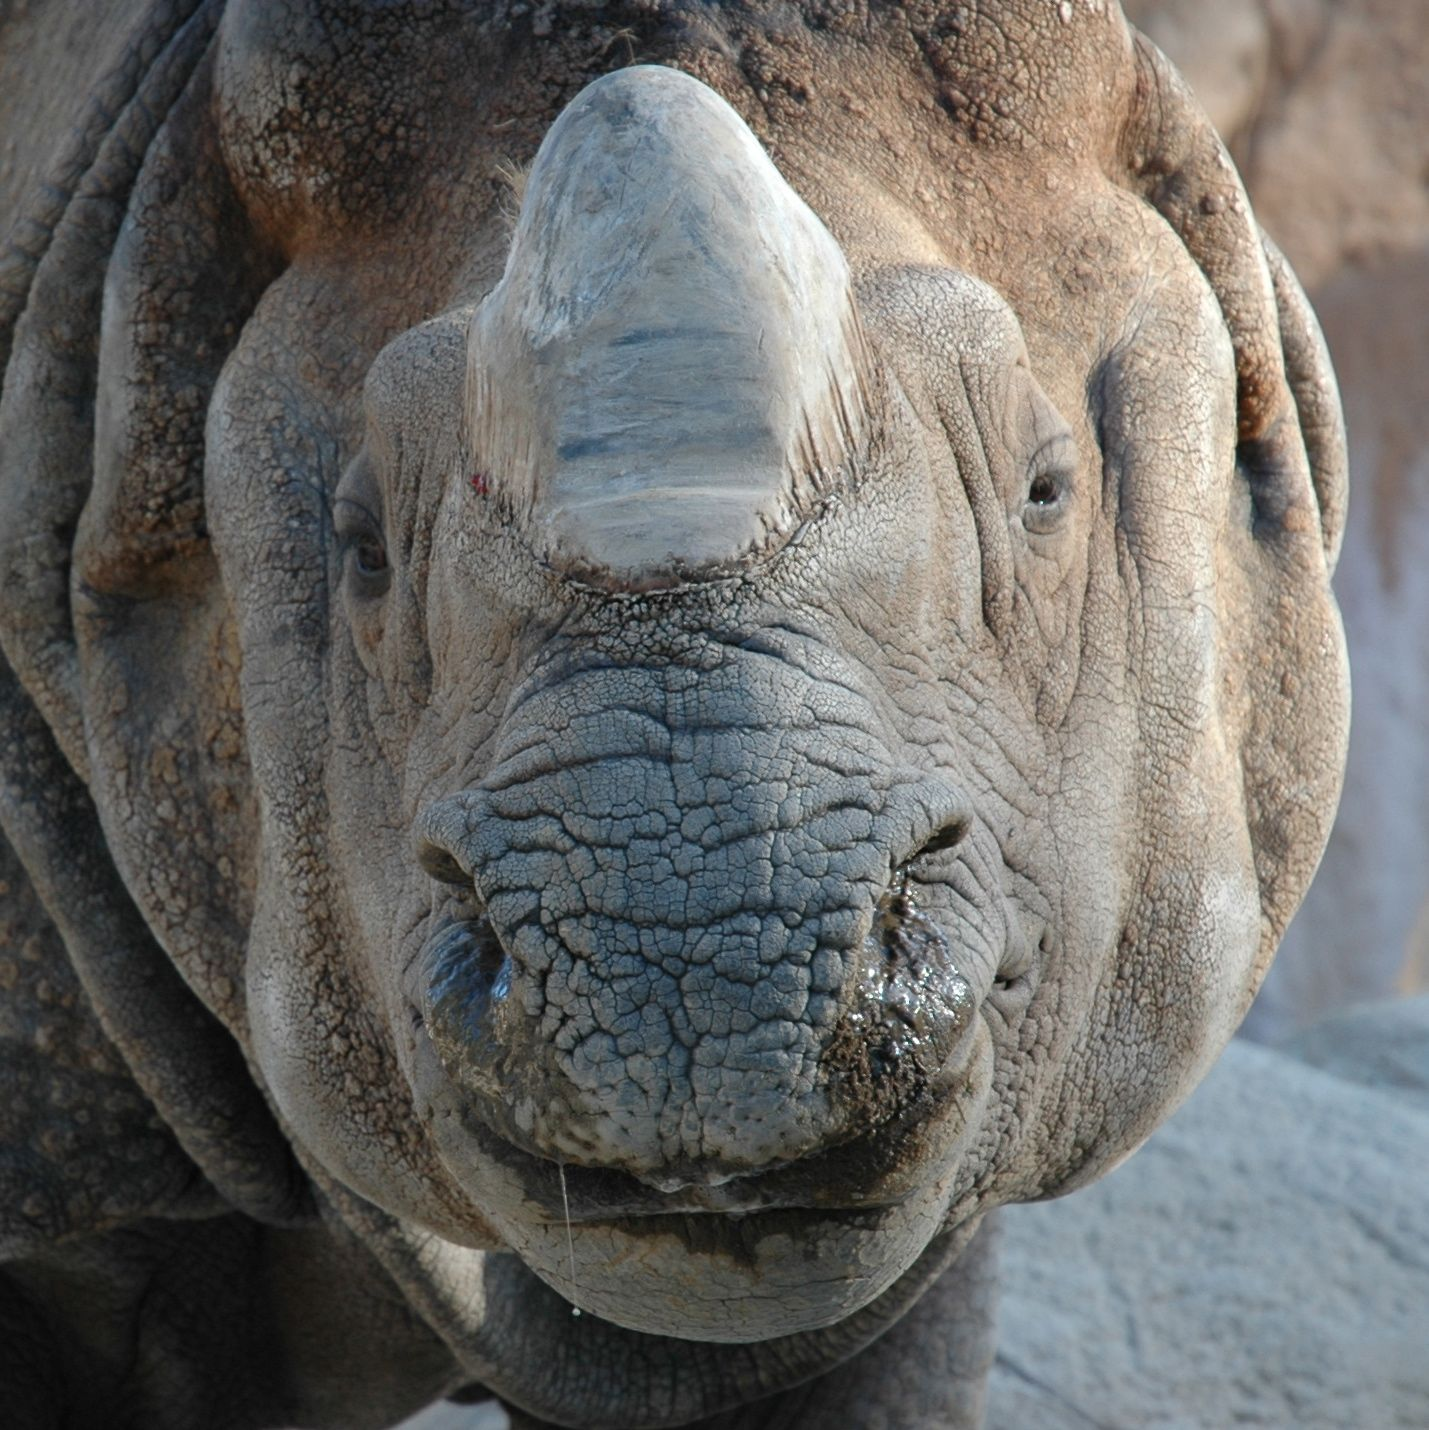 Yes, it's a rhino...